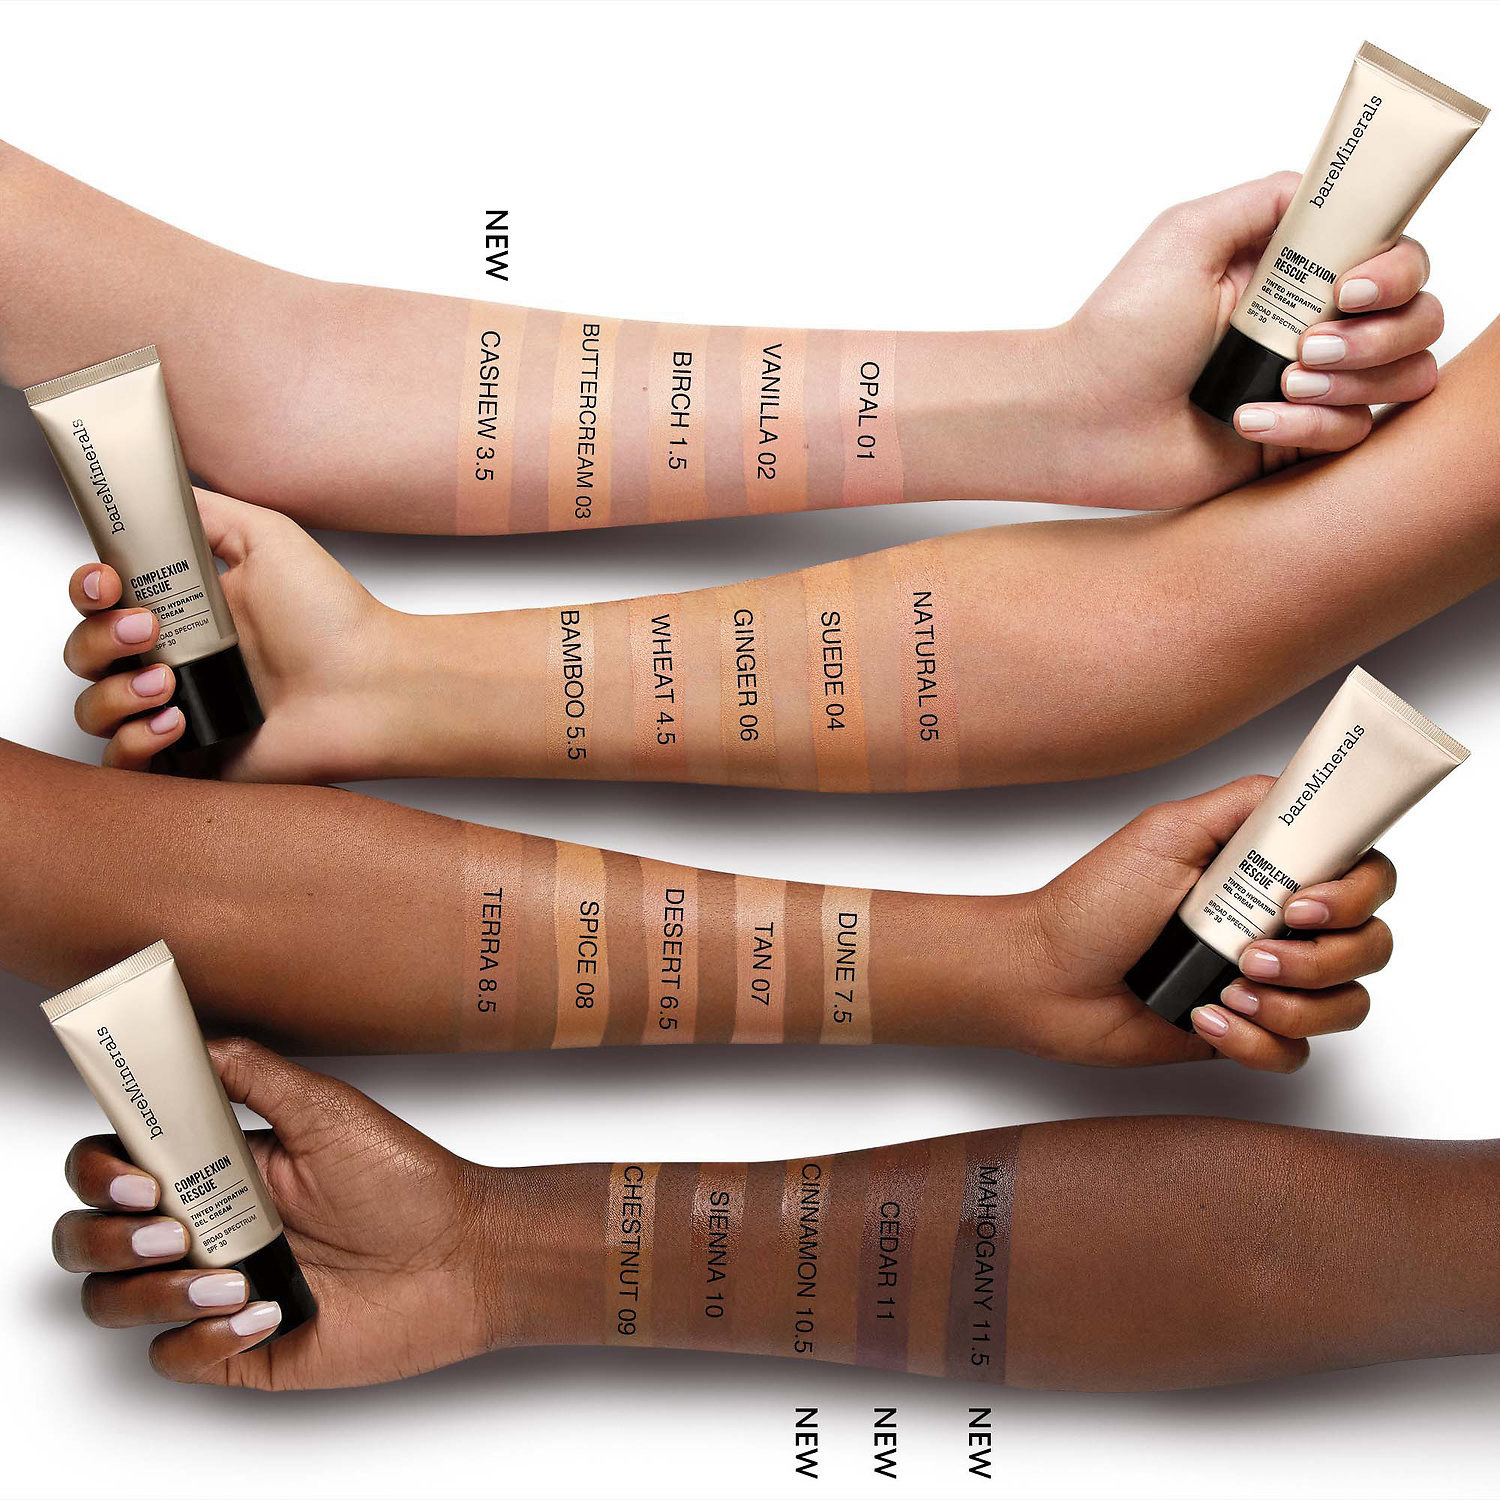 Four models of different skin tones with the sunscreen on their arm